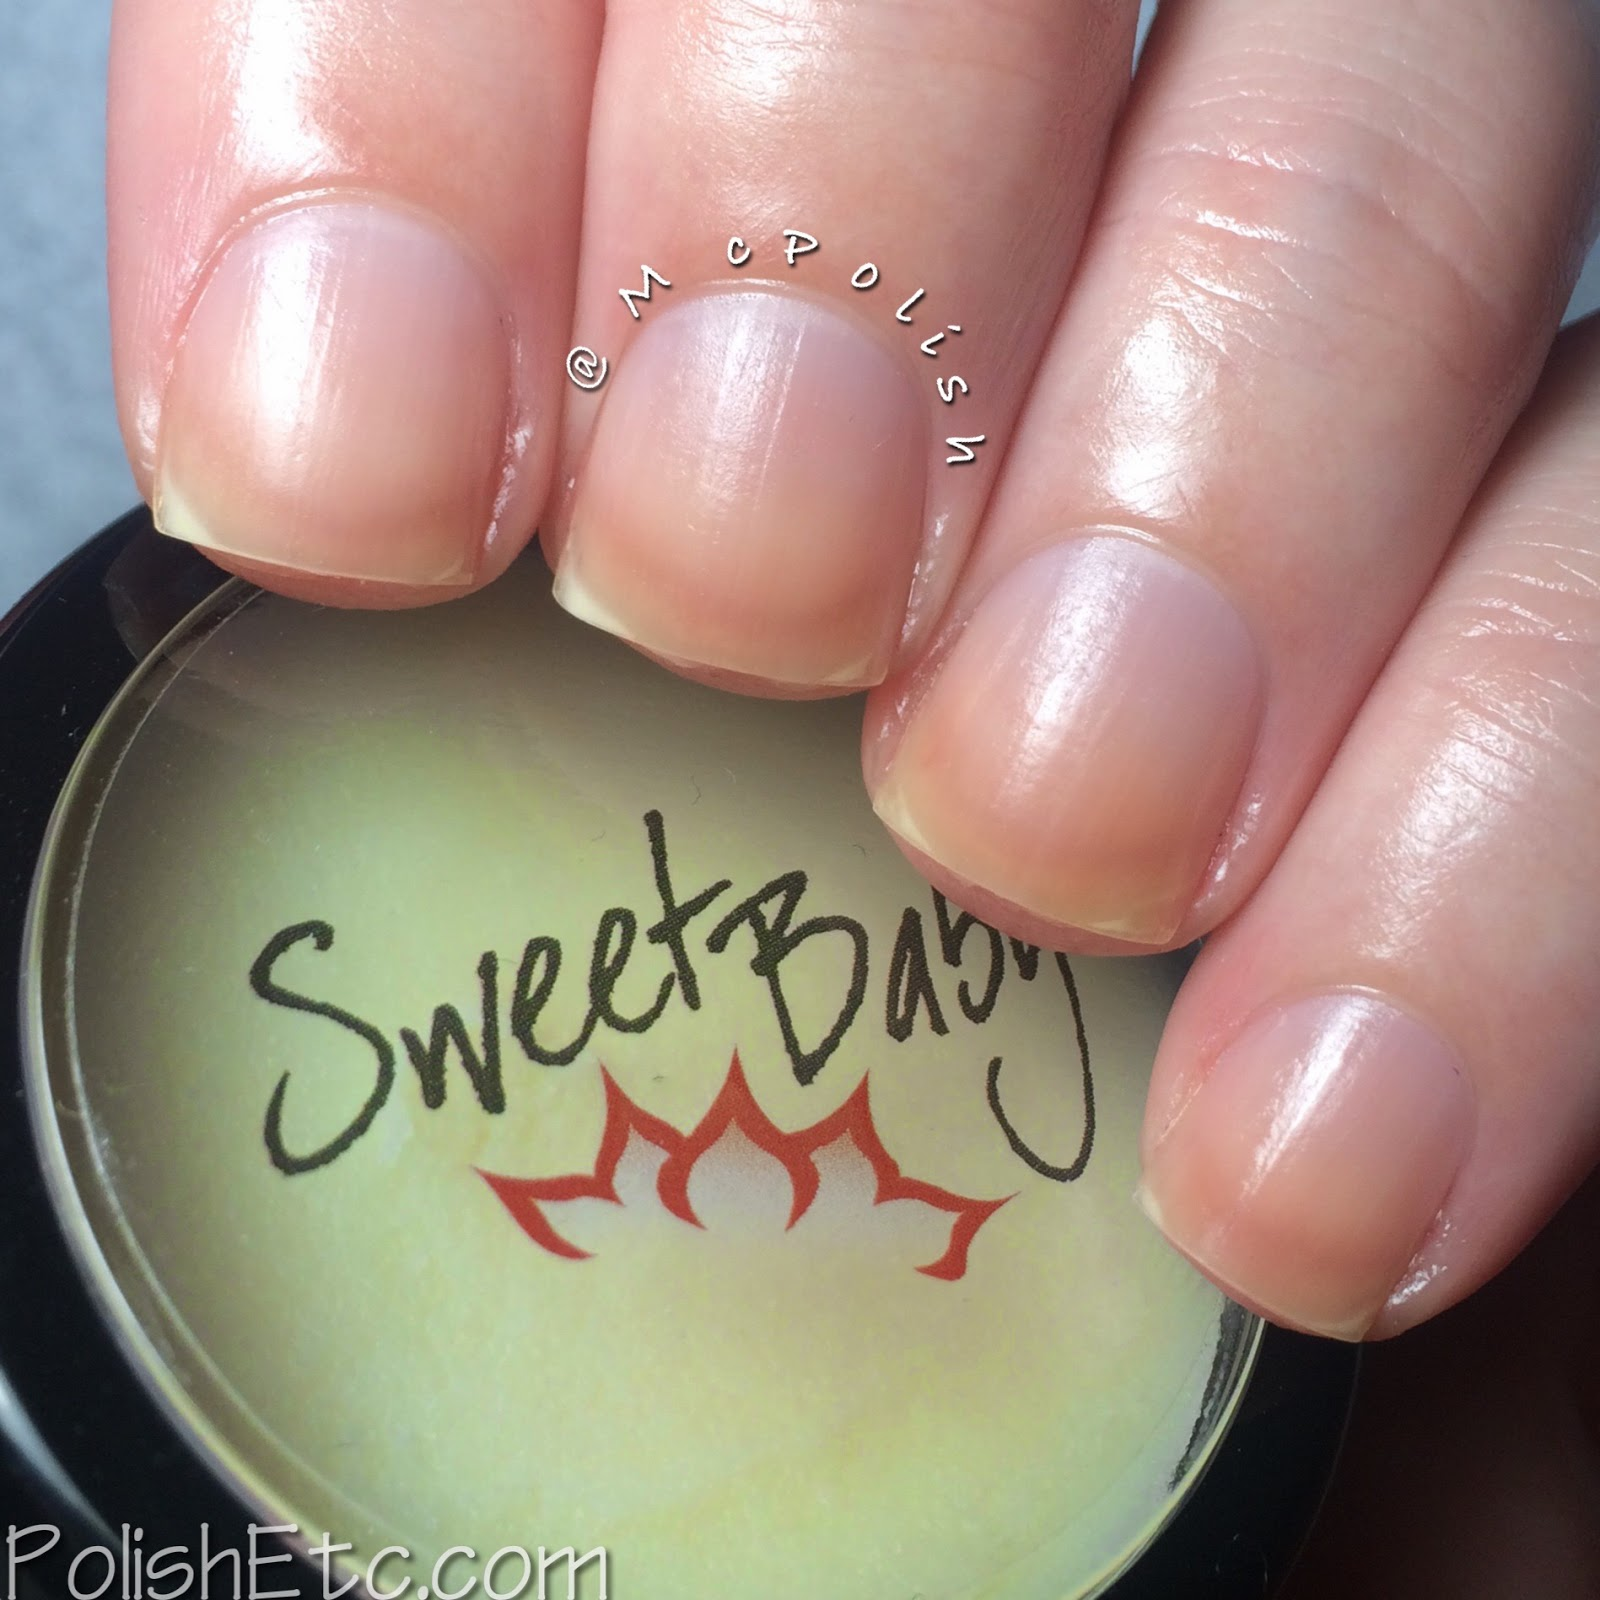 Sweet Baby by Donna cuticle balms and oils - McPolish